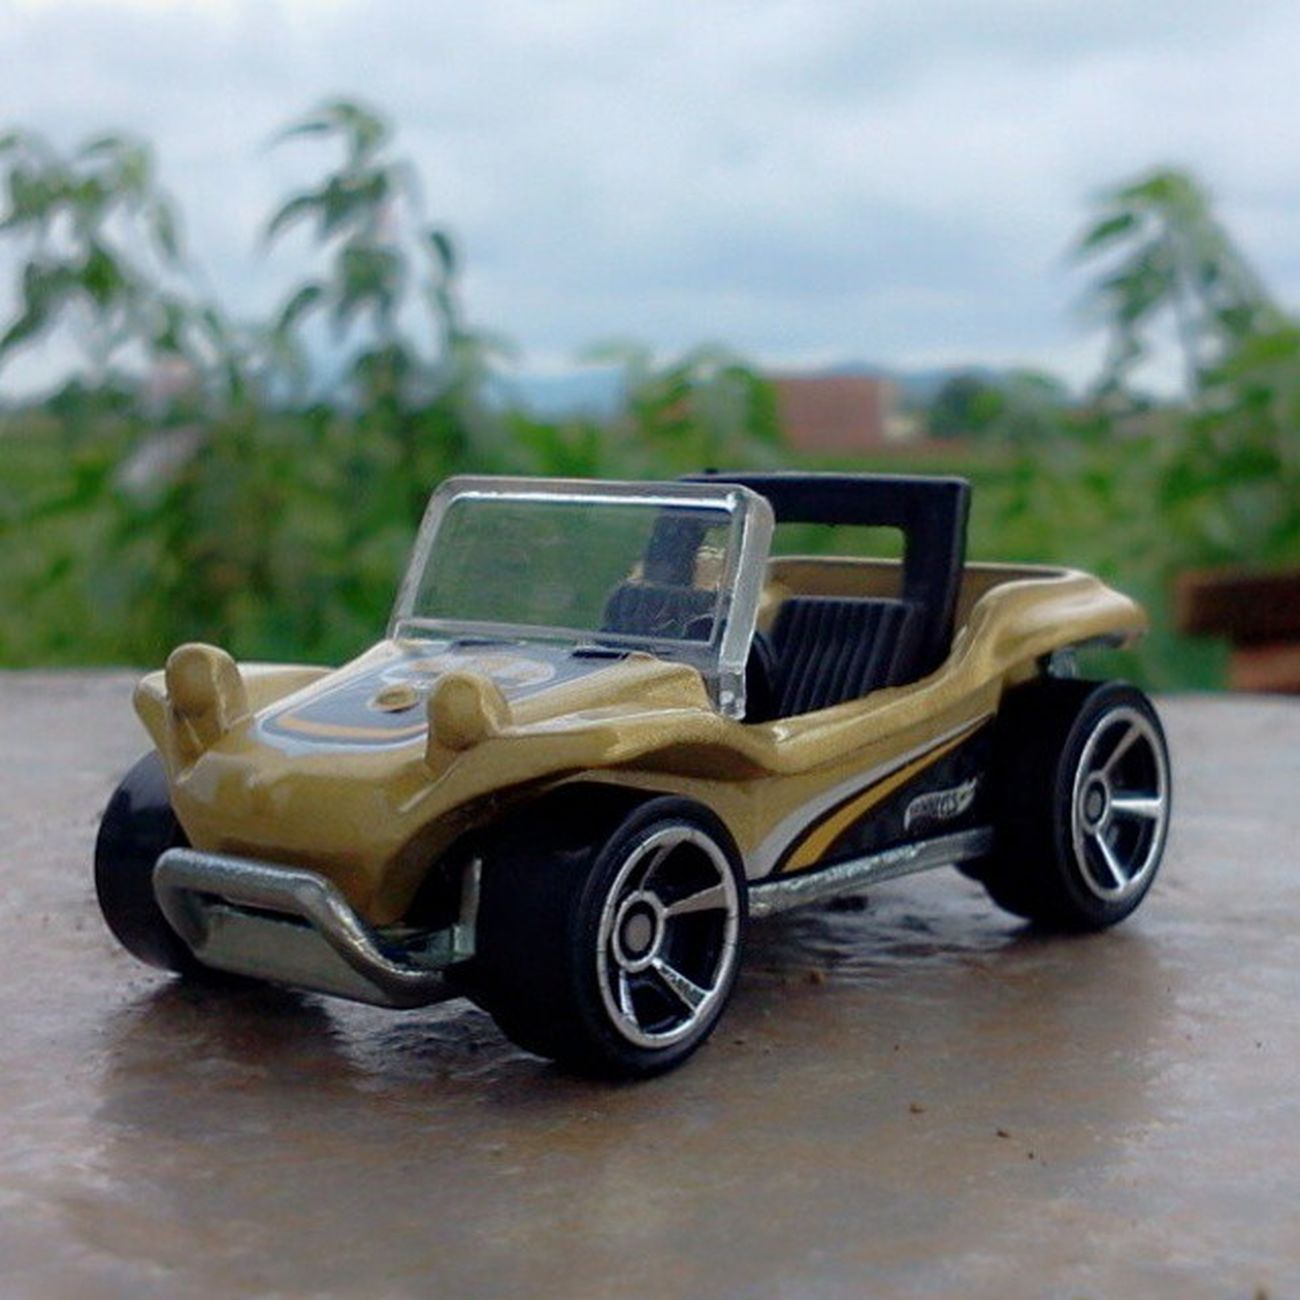 Meyers manx Nature Explore HW Hwloose Hwc HotWheels Hotweelscollection Hotwheelscollections Hotwheelsindonesian Hotwheelscollector Hotwheelsaddict Hotwheelsaddicted Diecast Diecast_addict Diecast_indonesia DiecastIndonesia Scale164 Instalike Instacollection Instacollectin Instacar Instatoys Store ToyCar Follow followme